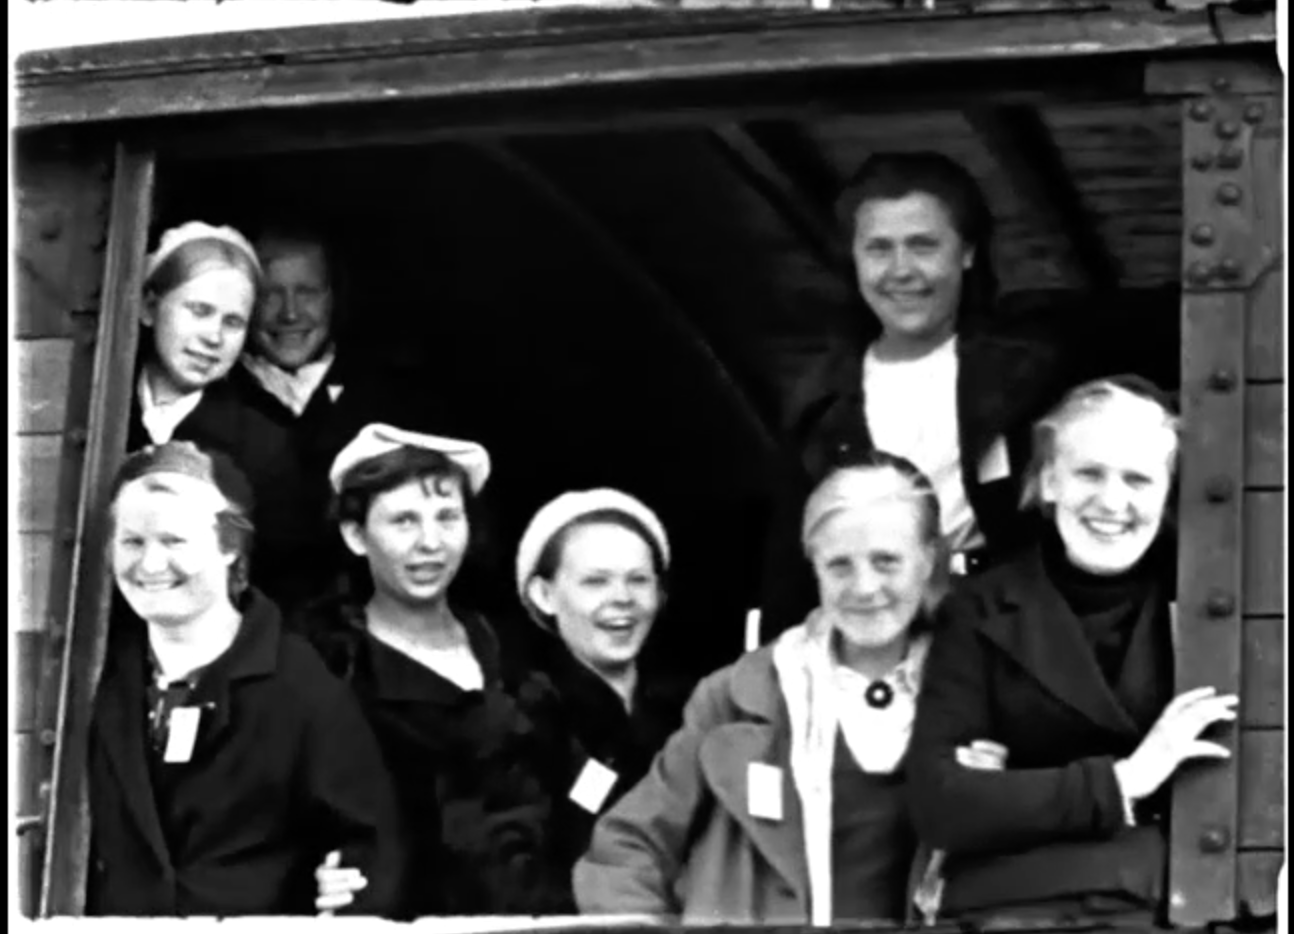 This 1942 film documents the transport of a large group of forced laborers from the Soviet Union to a border station and army processing point in German-occupied Lithuania.